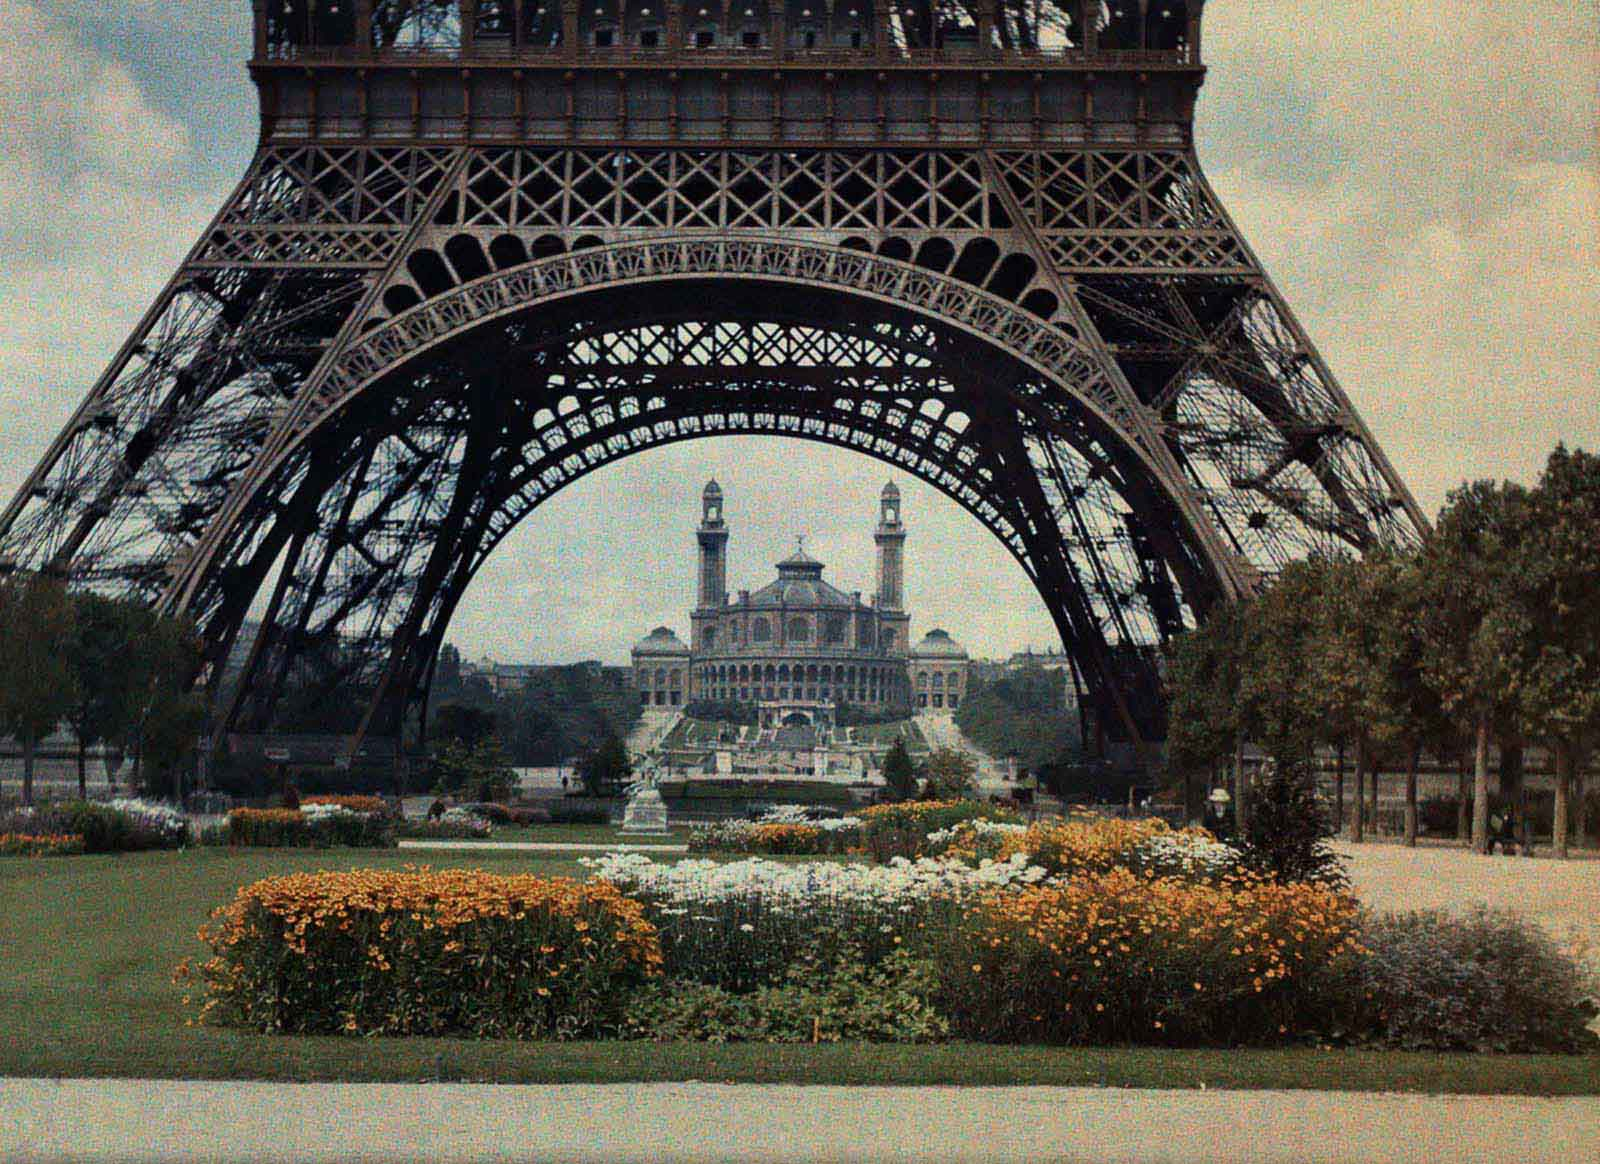 The Trocadero gardens and the Eiffel Tower.